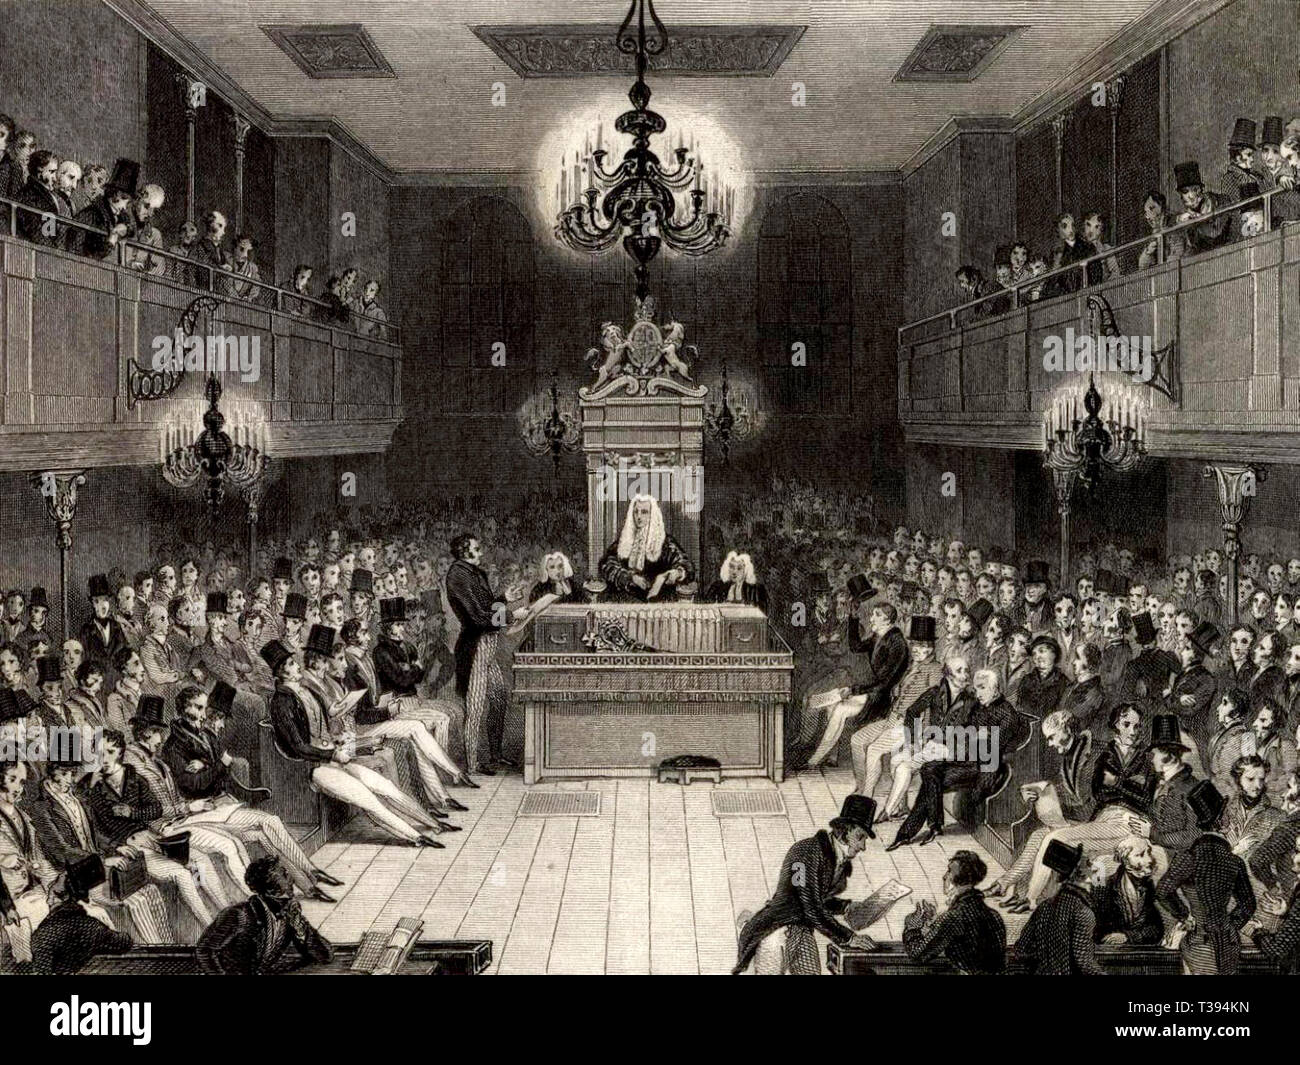 The Speaker presides over debates in the House of Commons, commemorating the destruction of the Commons Chamber by fire in 1834. - Stock Image